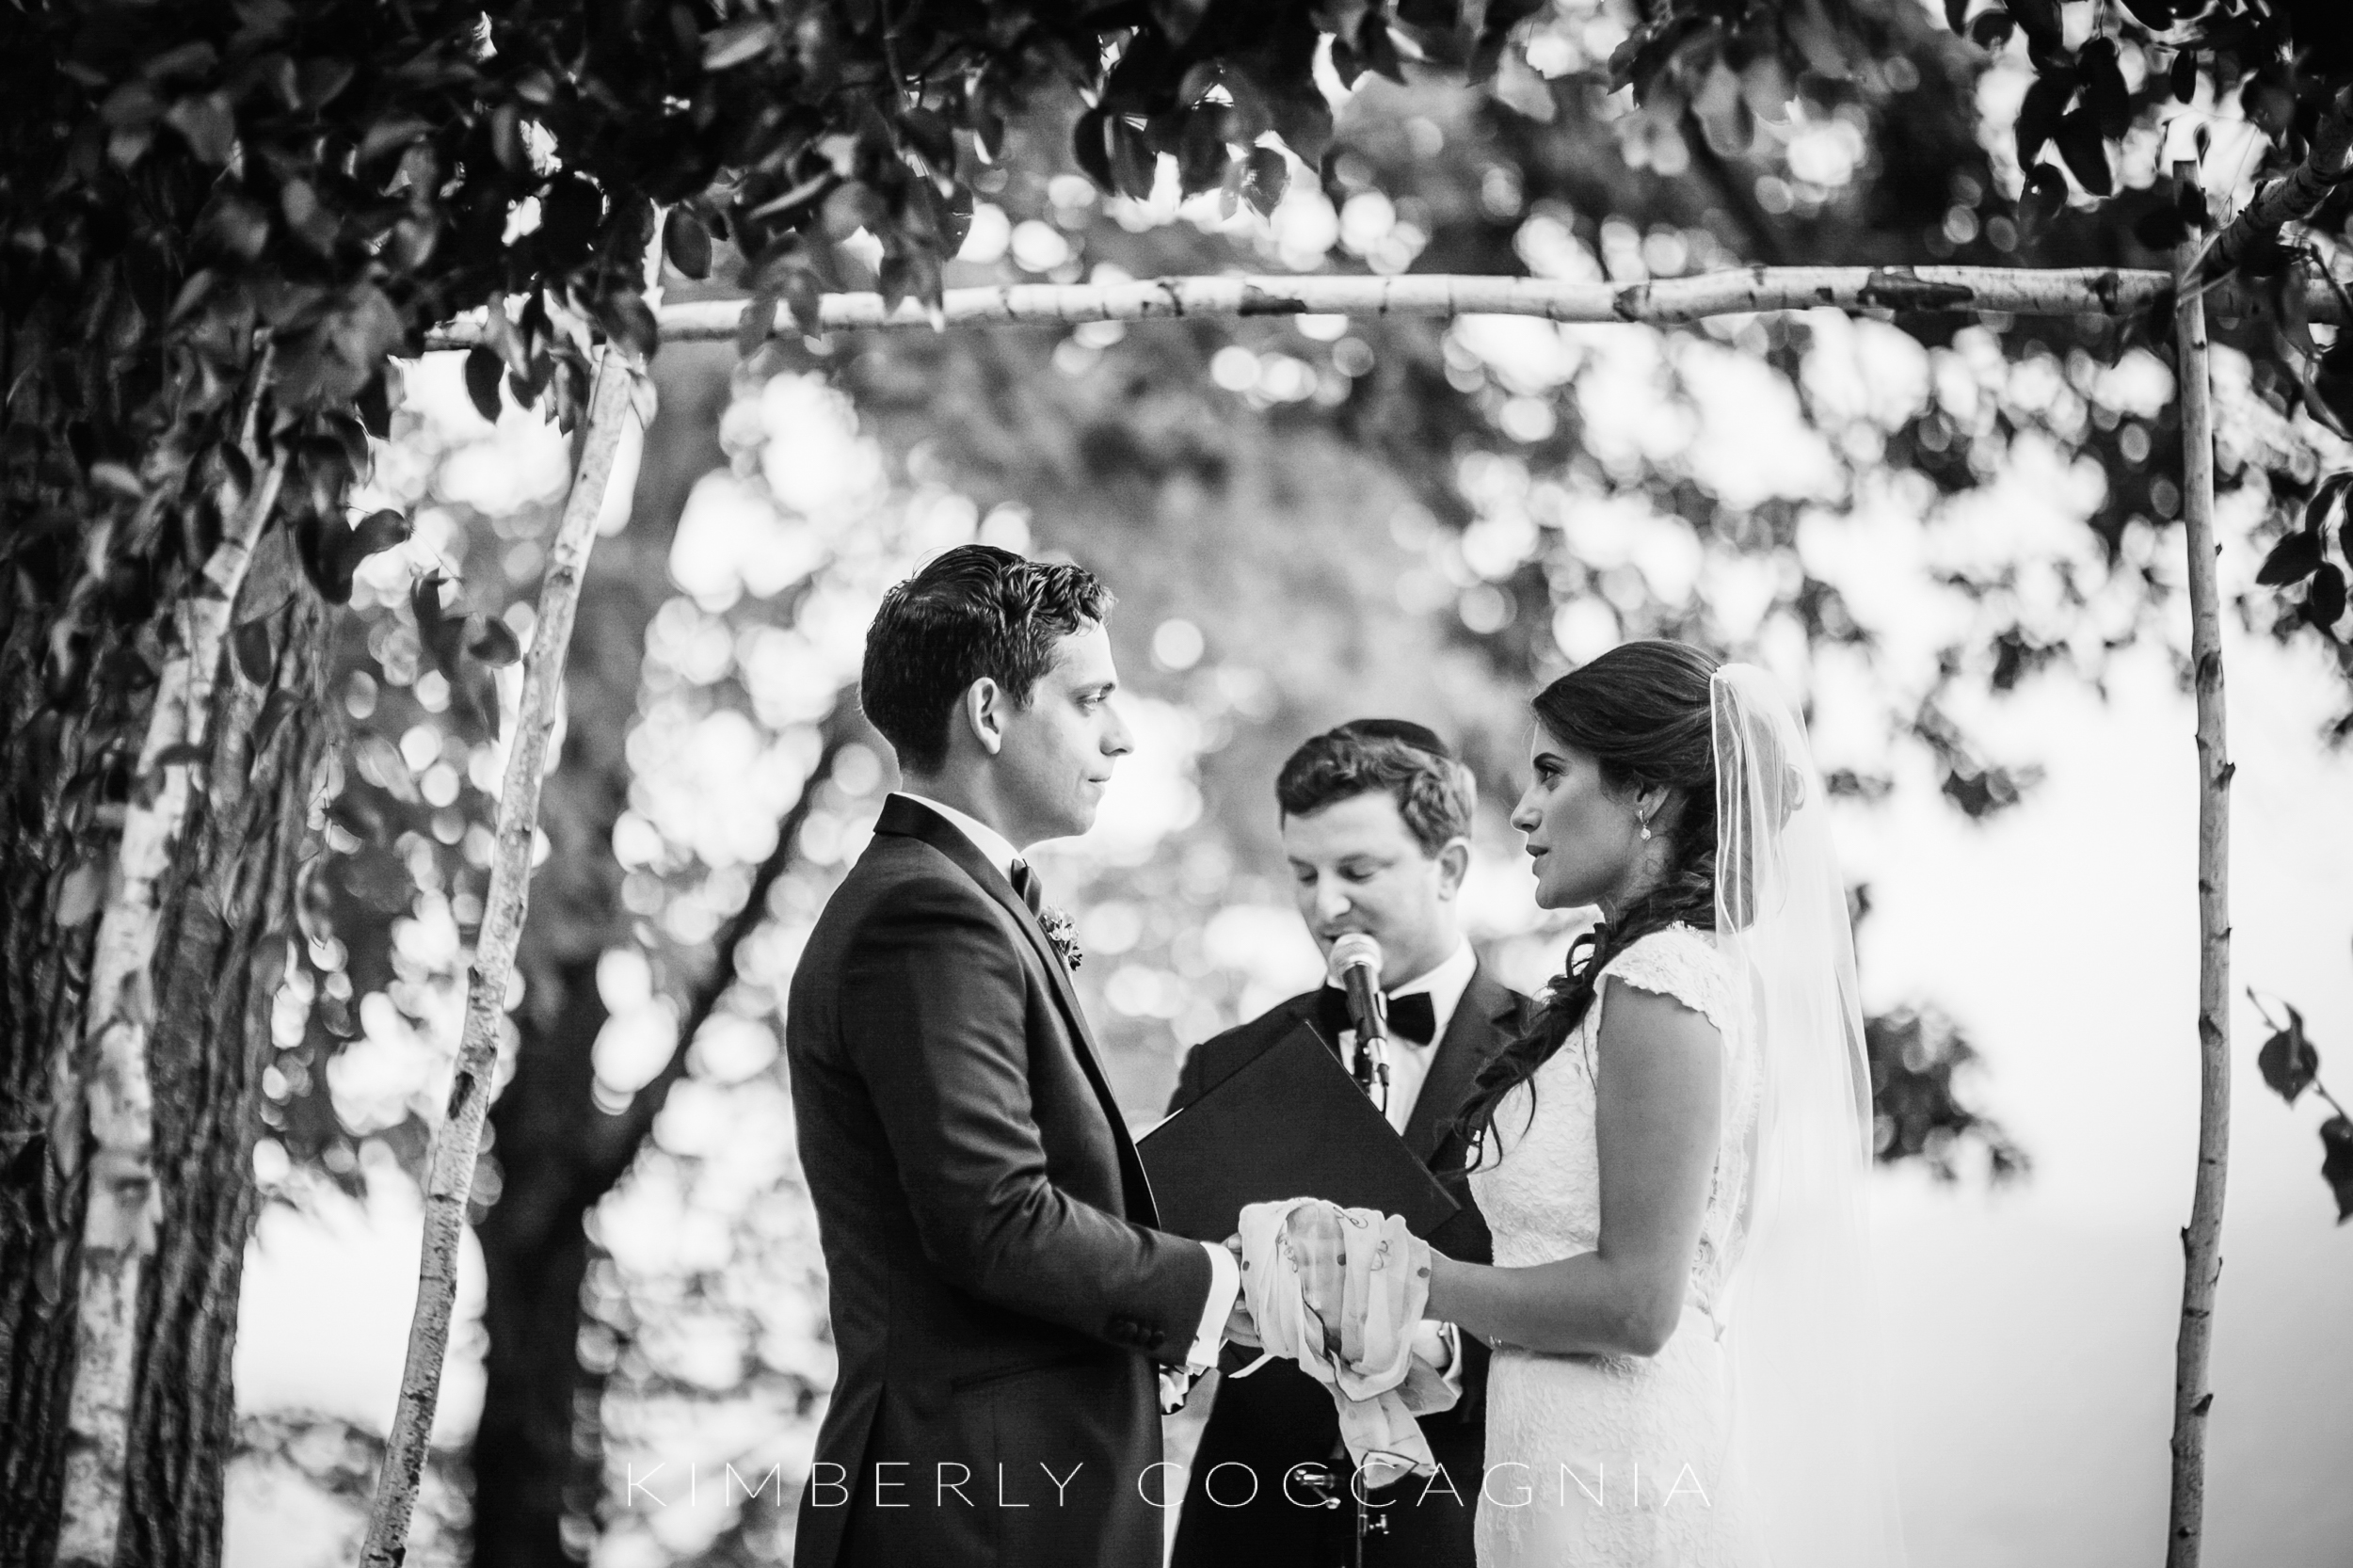 Kimberly+Coccagnia+Hudson+Valley+Wedding+Photographer-80.JPG